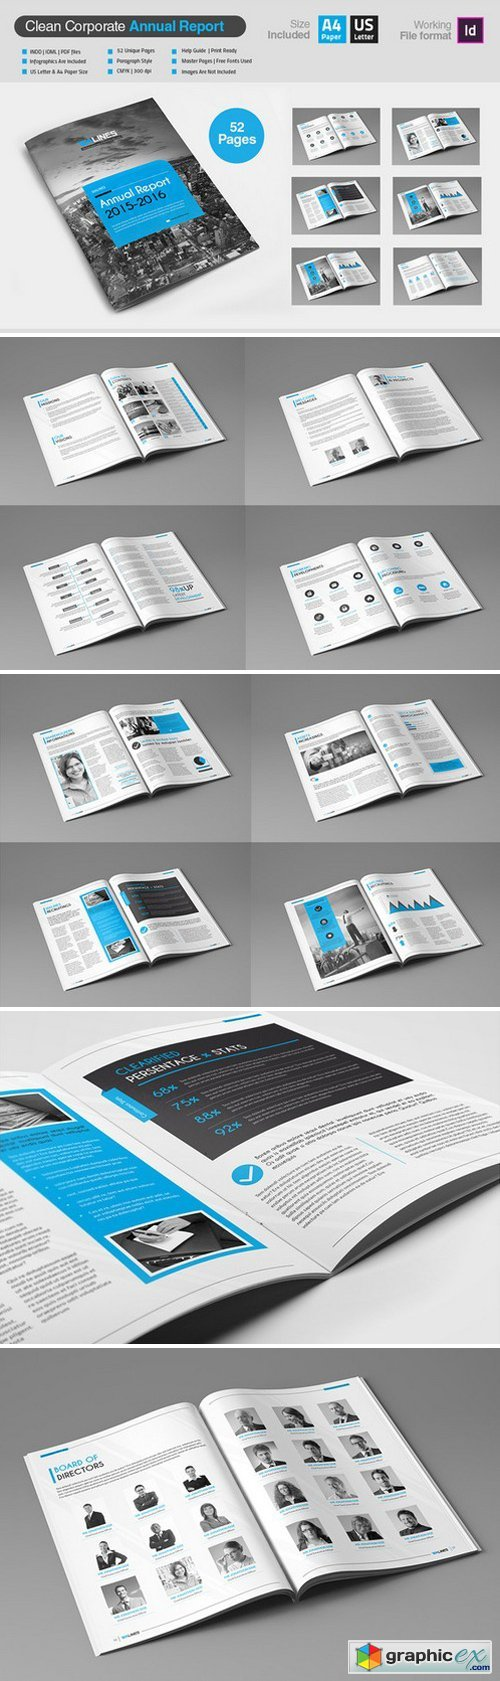 Clean Corporate Annual Report V1